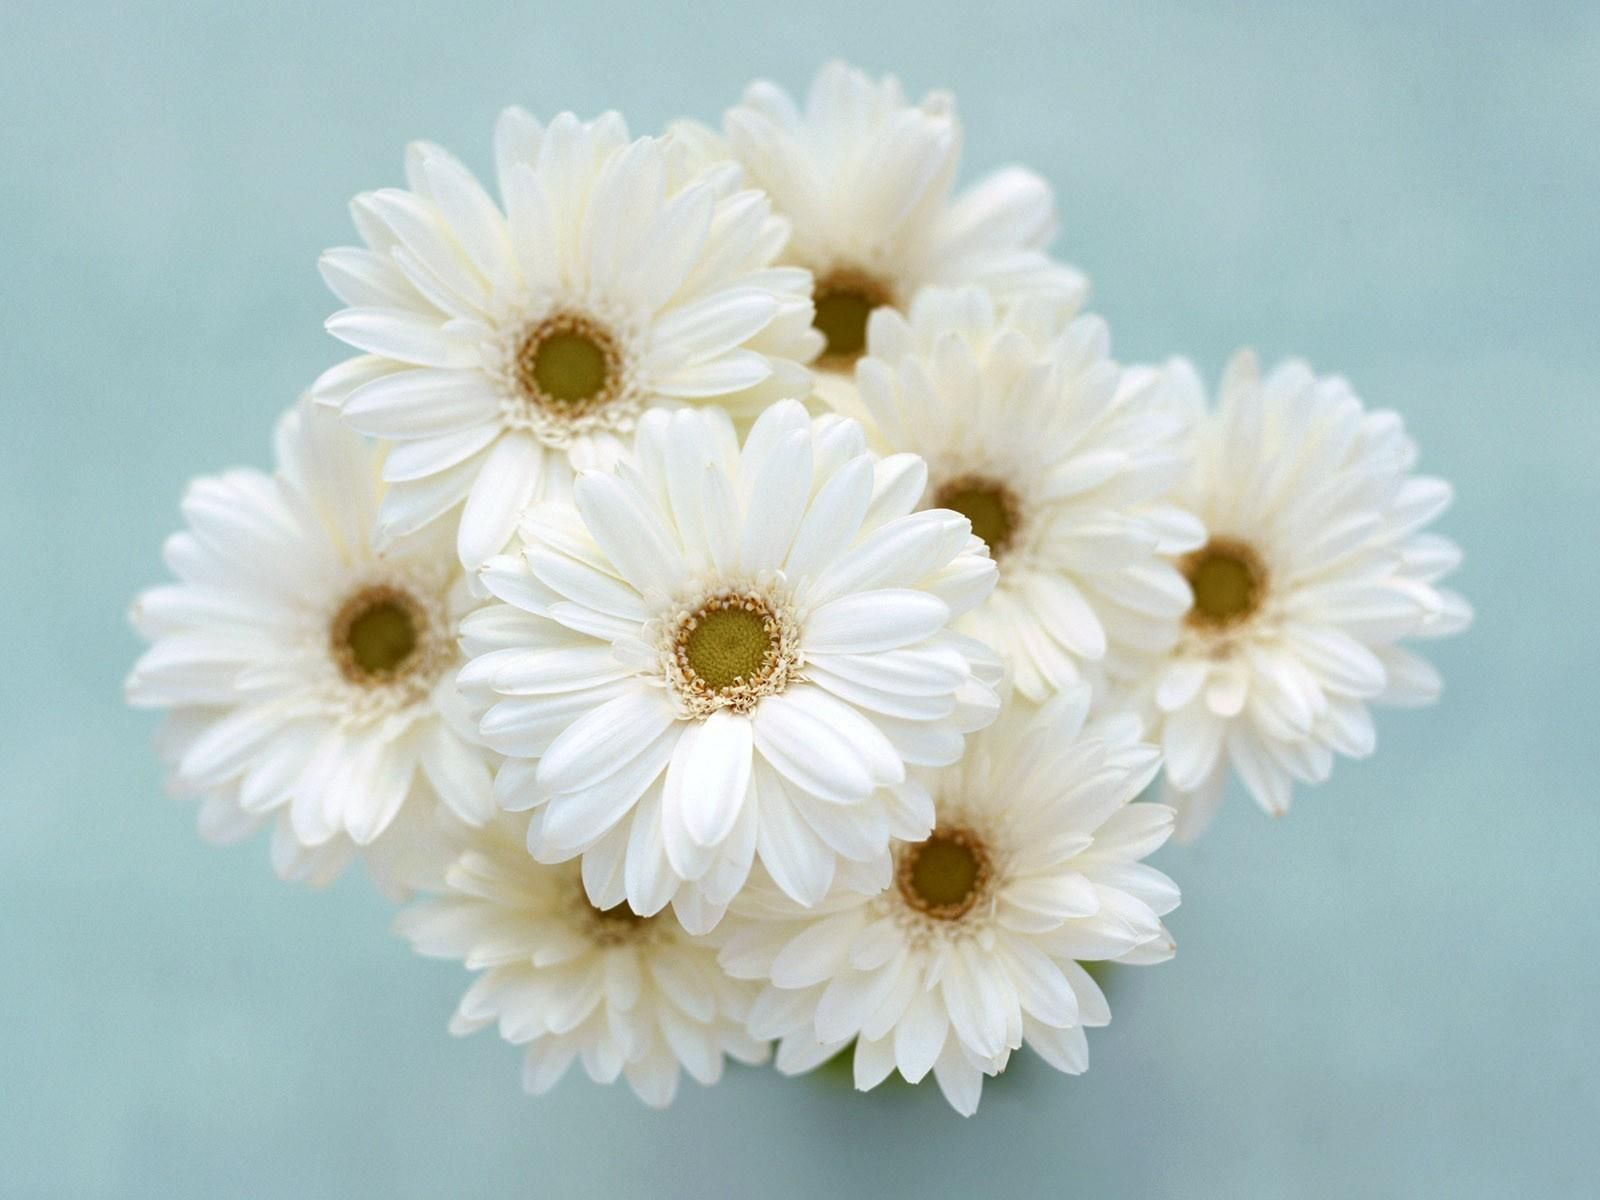 Images For White Flowers Bouquet White Flower Bouquet White Flowers Flowers